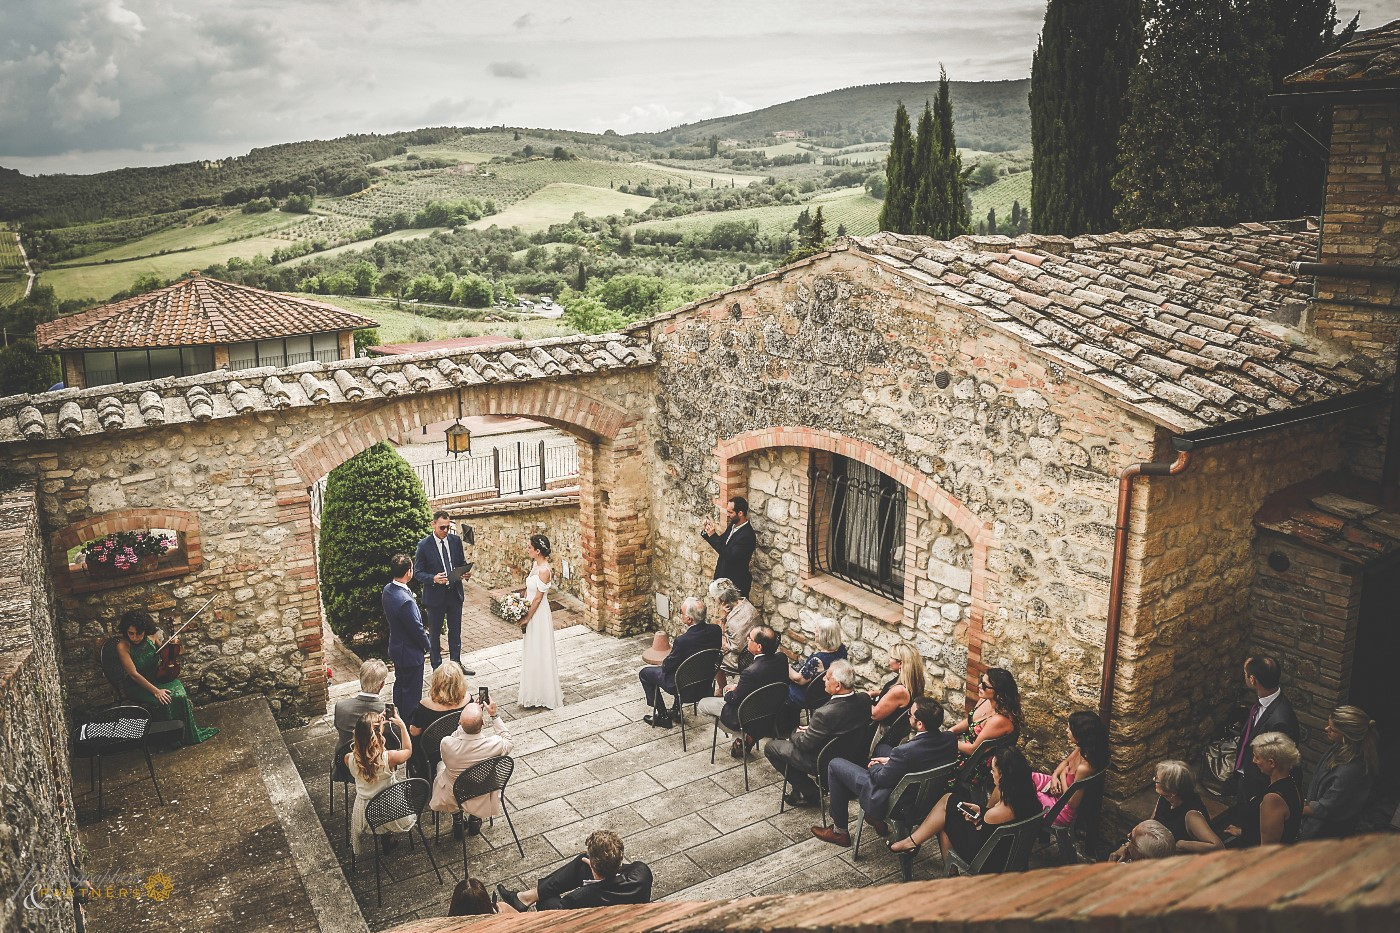 A panoramic photo with the beautiful Tuscan countryside in the background.